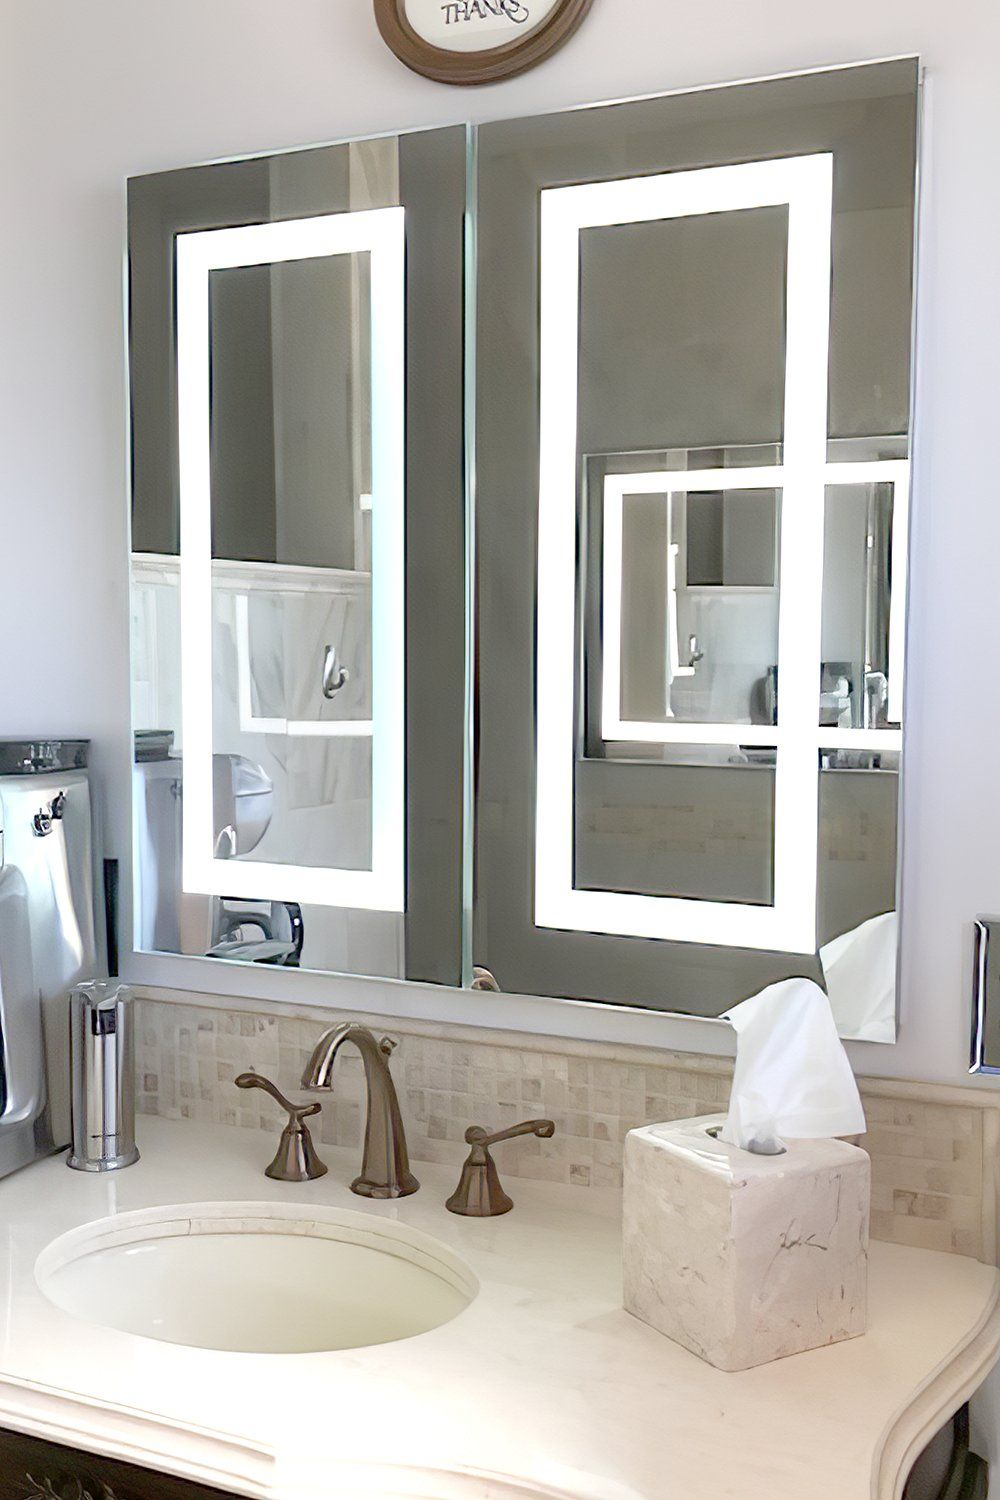 Lighted Twin Door Led Bathroom Mirror Medicine Cabinet 32 Wide X 32 Tall Flush Mounted 6 000 In 2021 Led Mirror Bathroom Bathroom Mirror Medicine Cabinet Mirror